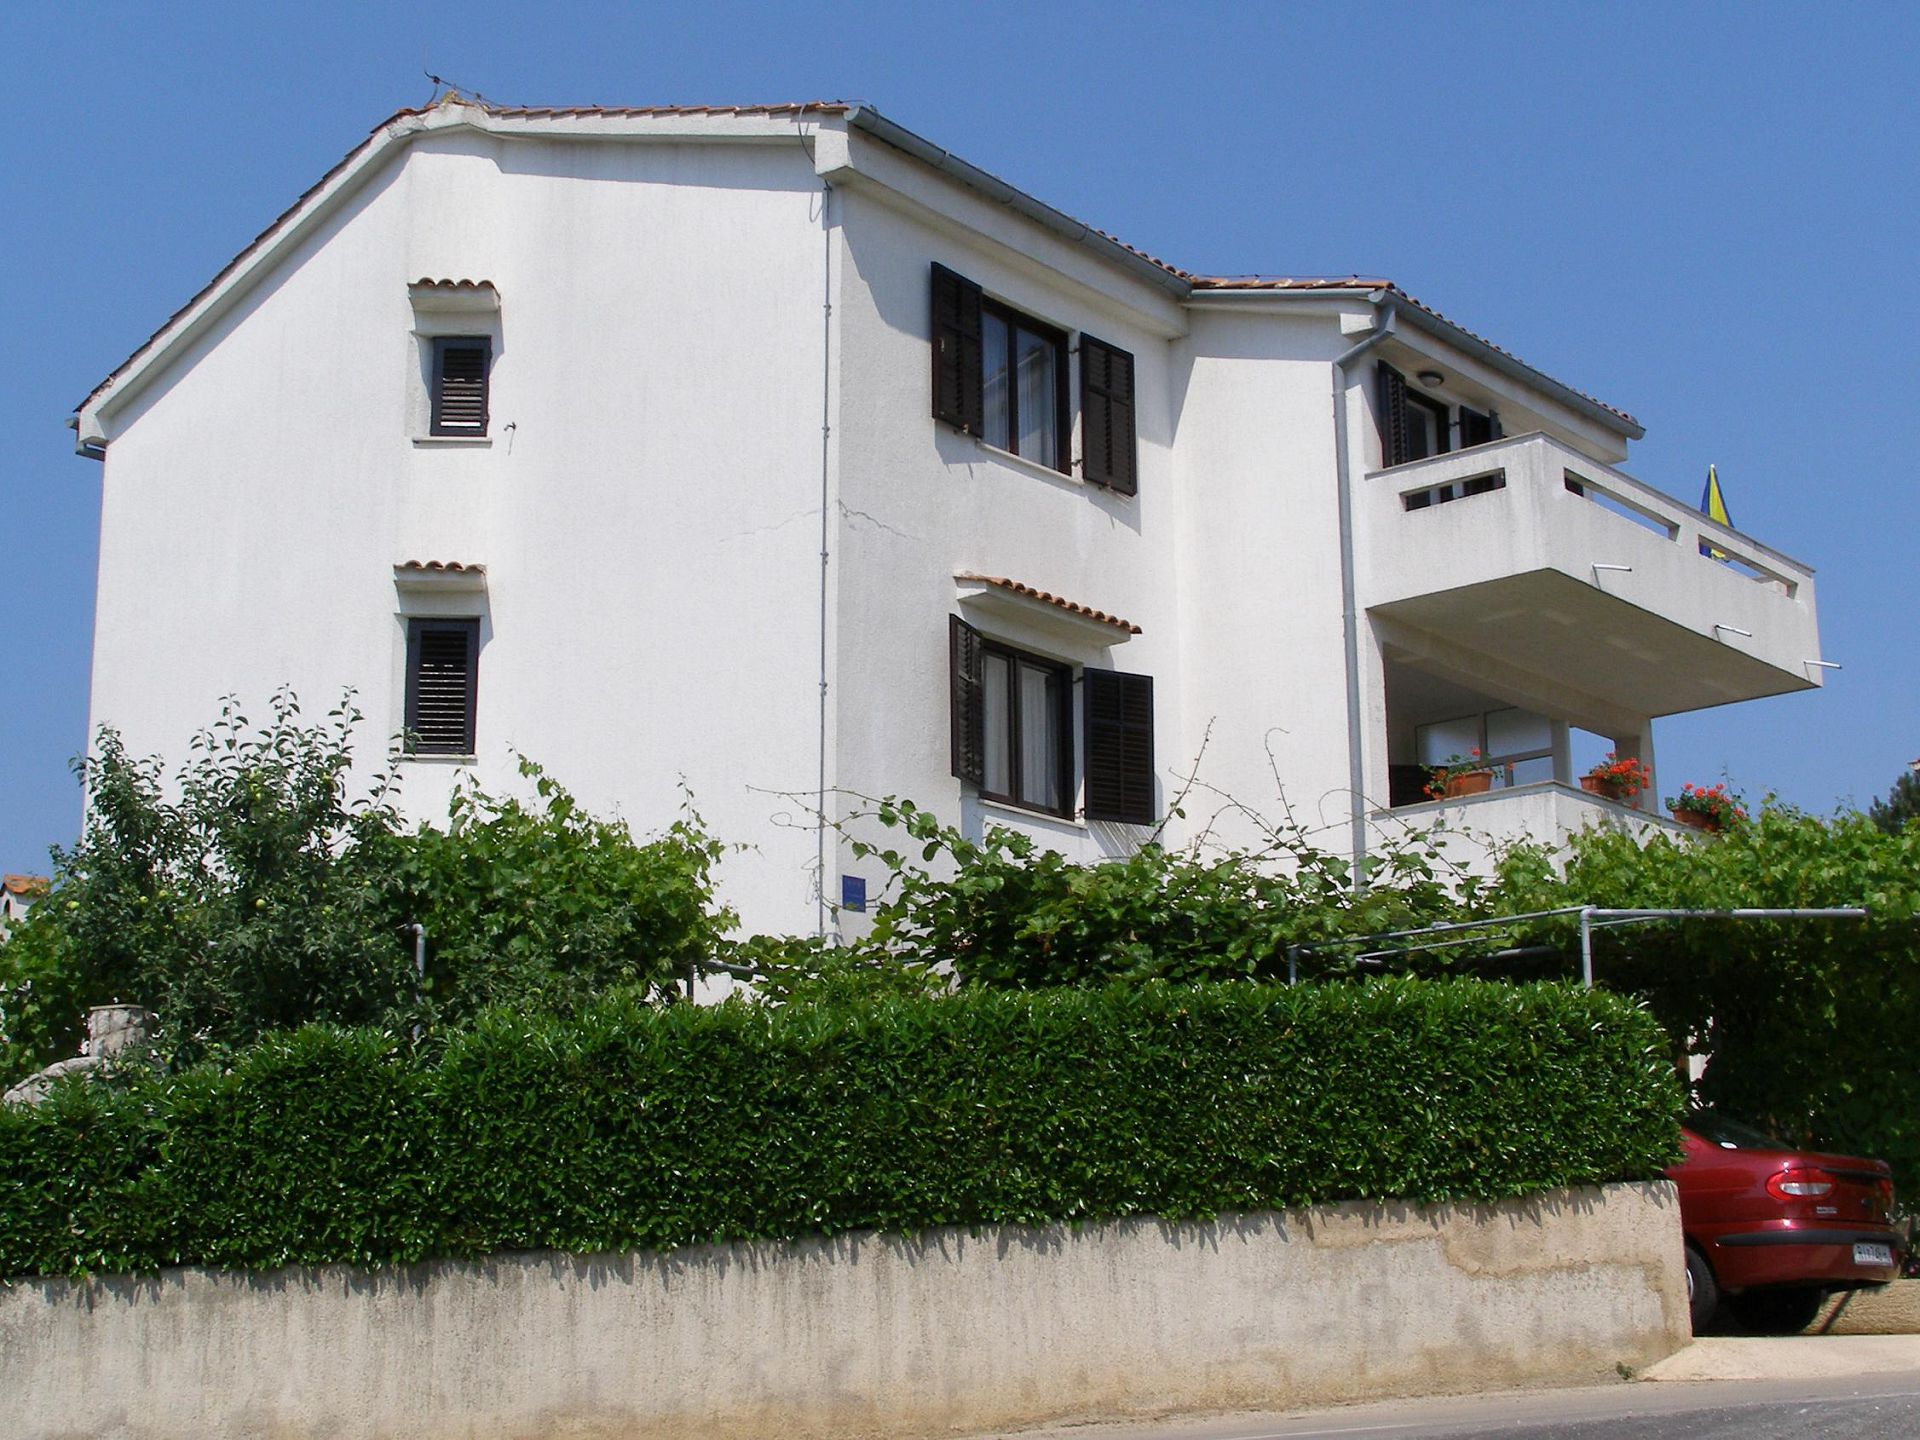 2305  - Krk - Apartments Croatia